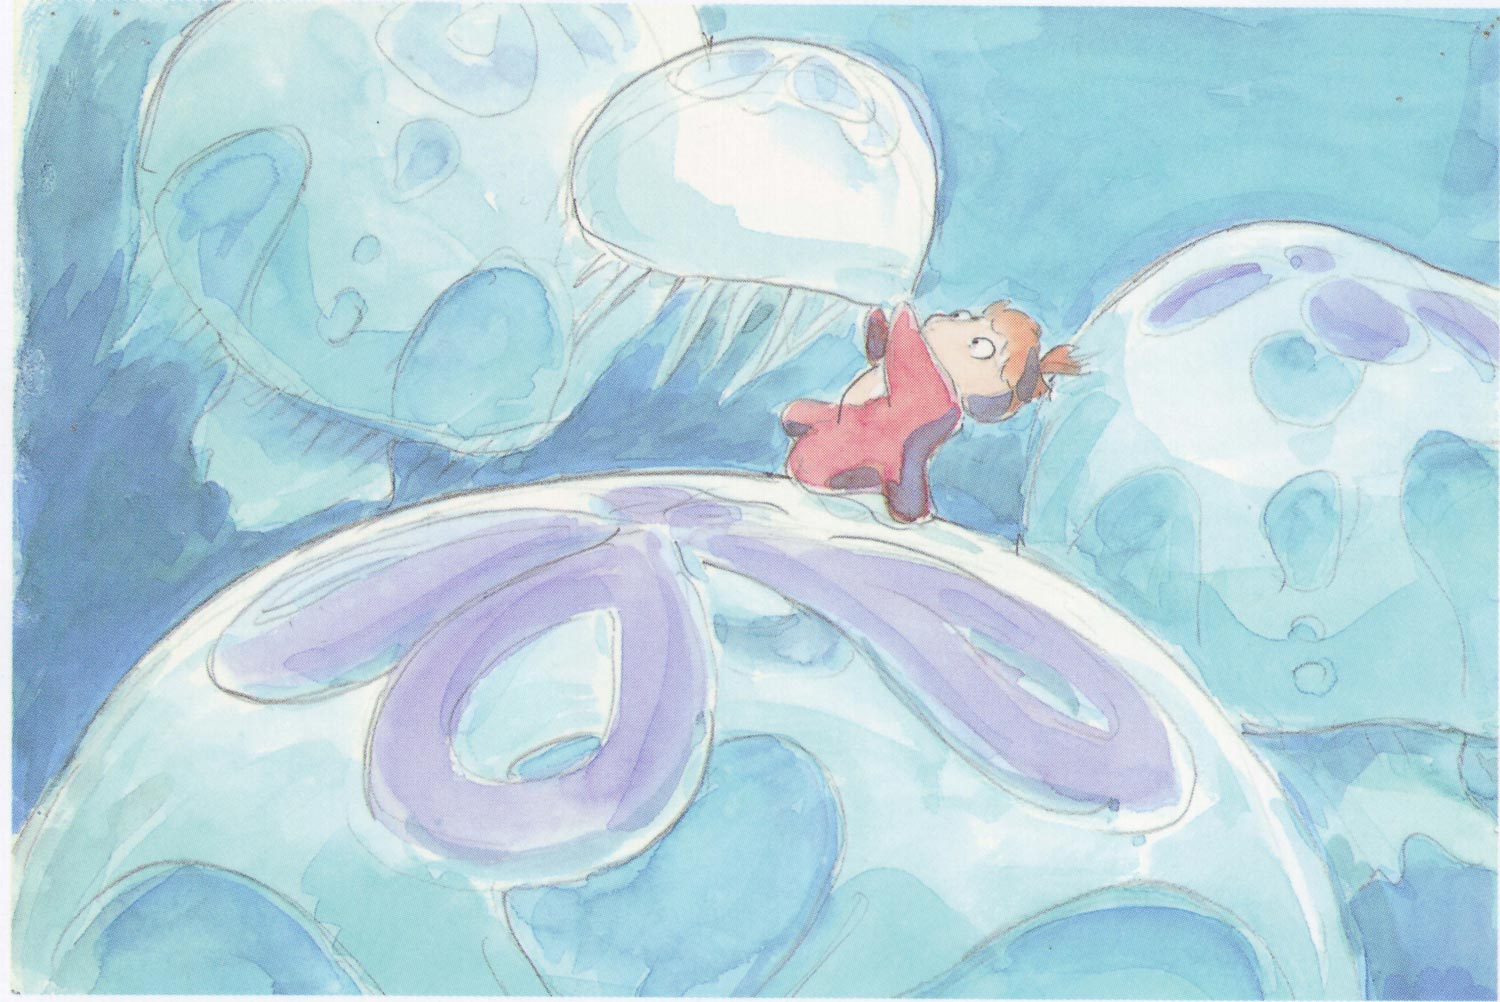 ponyo_on_the_cliff_by_the_sea_artwork_character__14.jpg